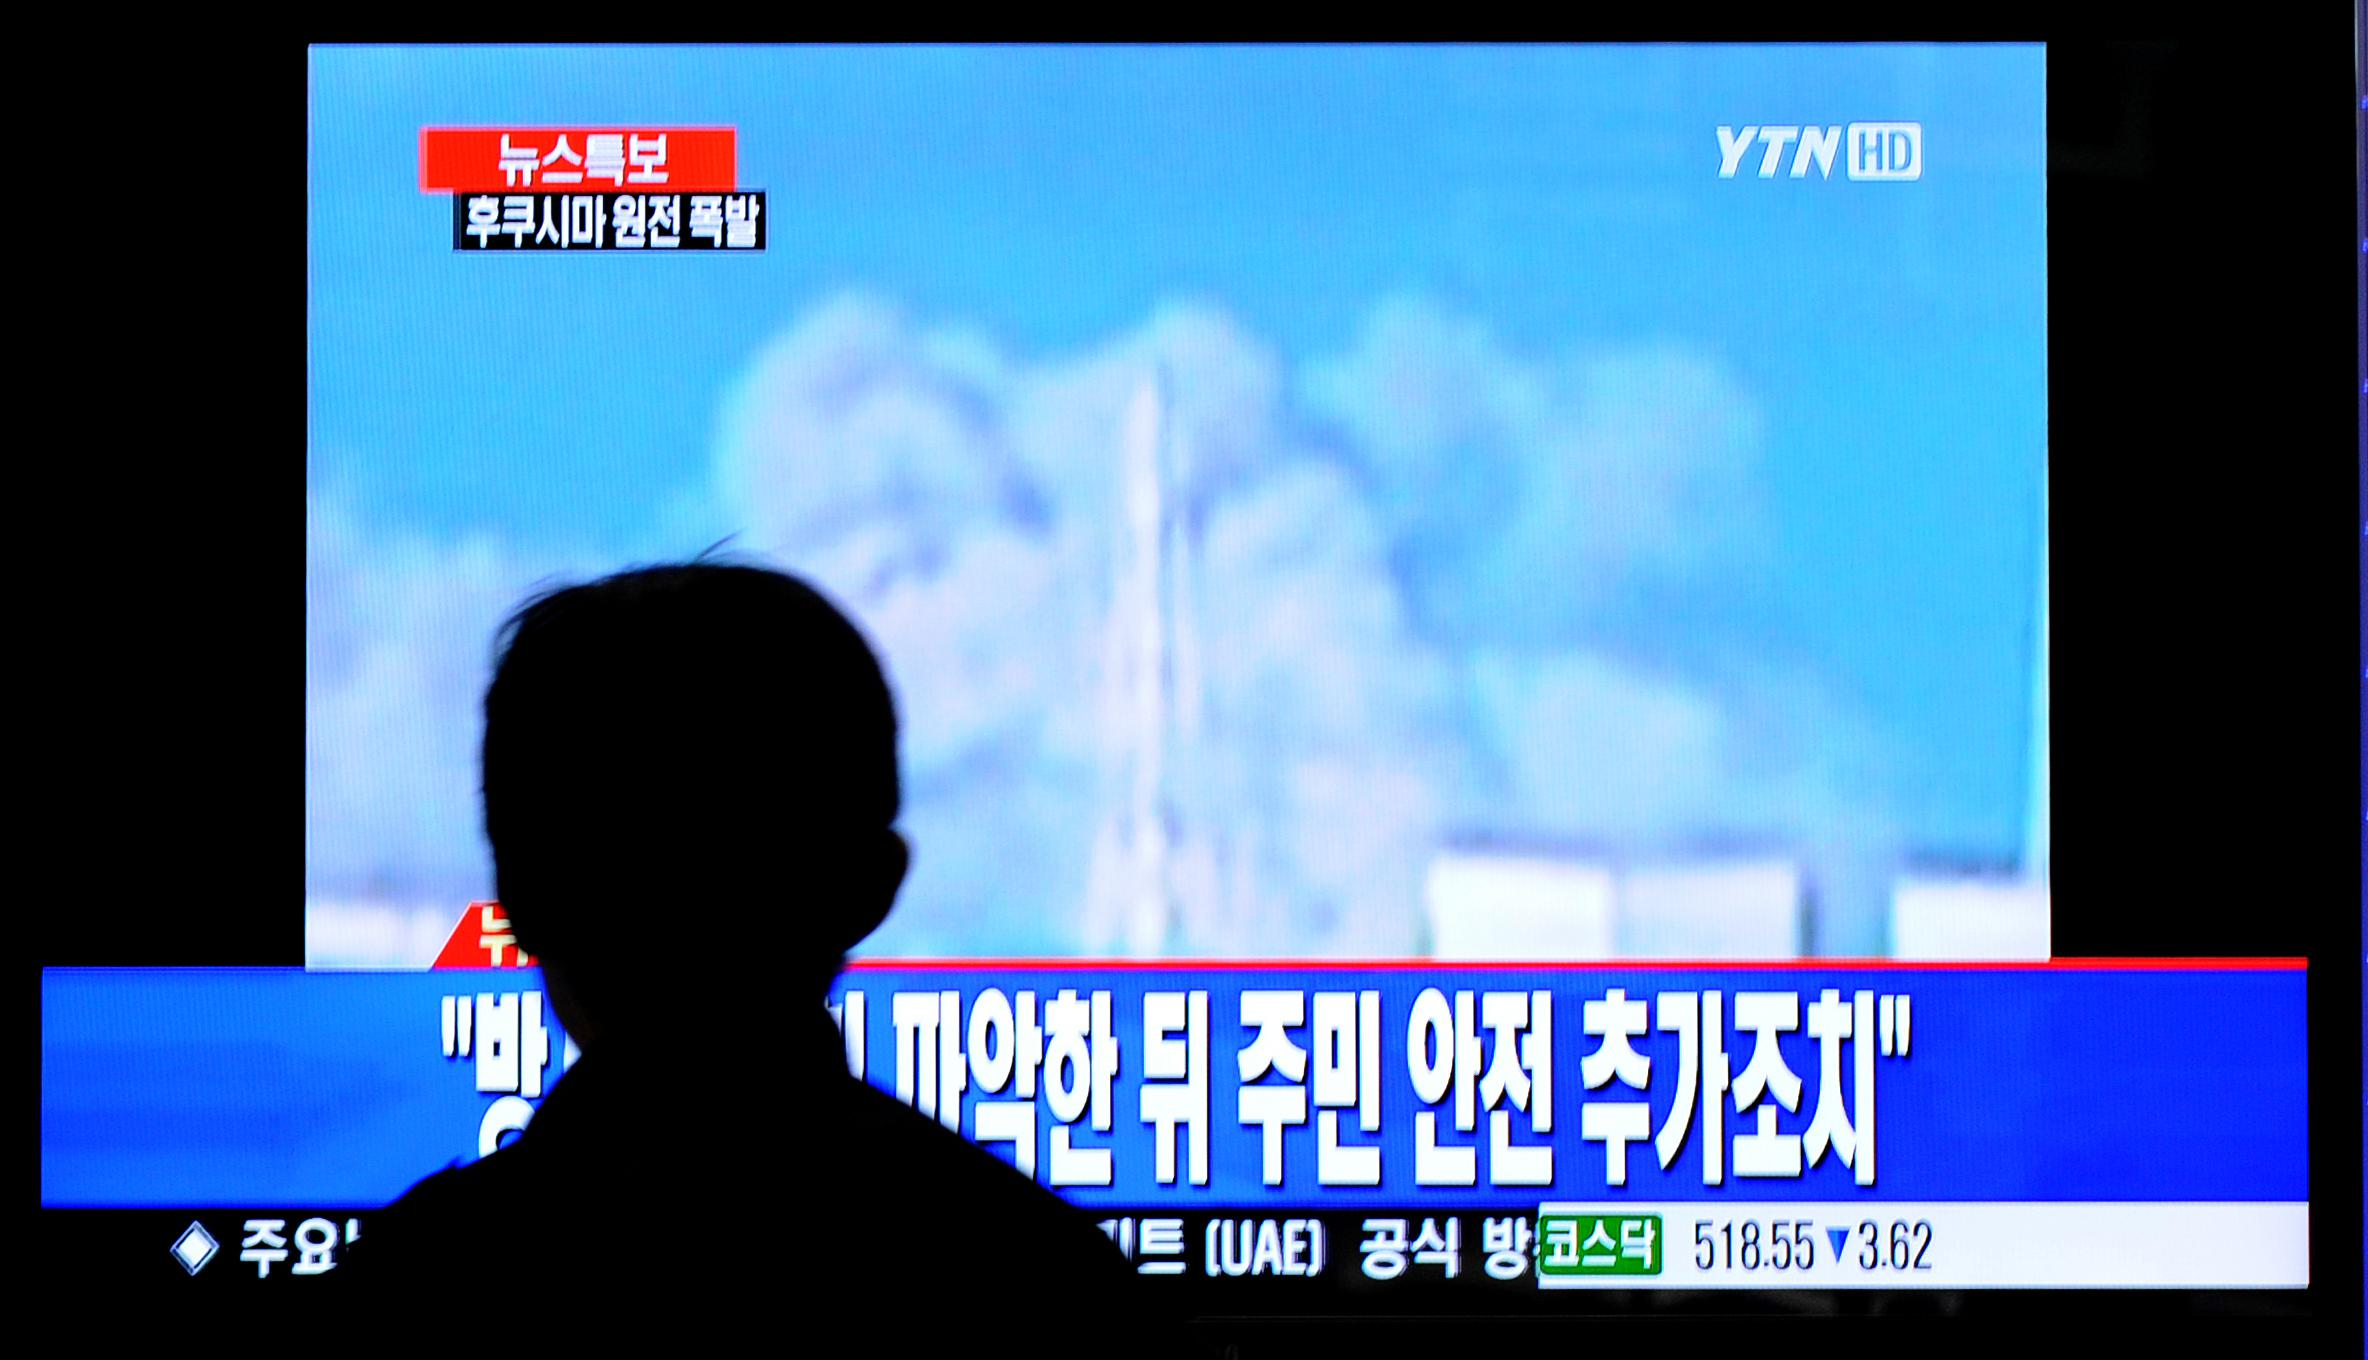 A South Korean passenger watches TV showing Japan's Fukushima No. 1 atomic plant spewing fumes.